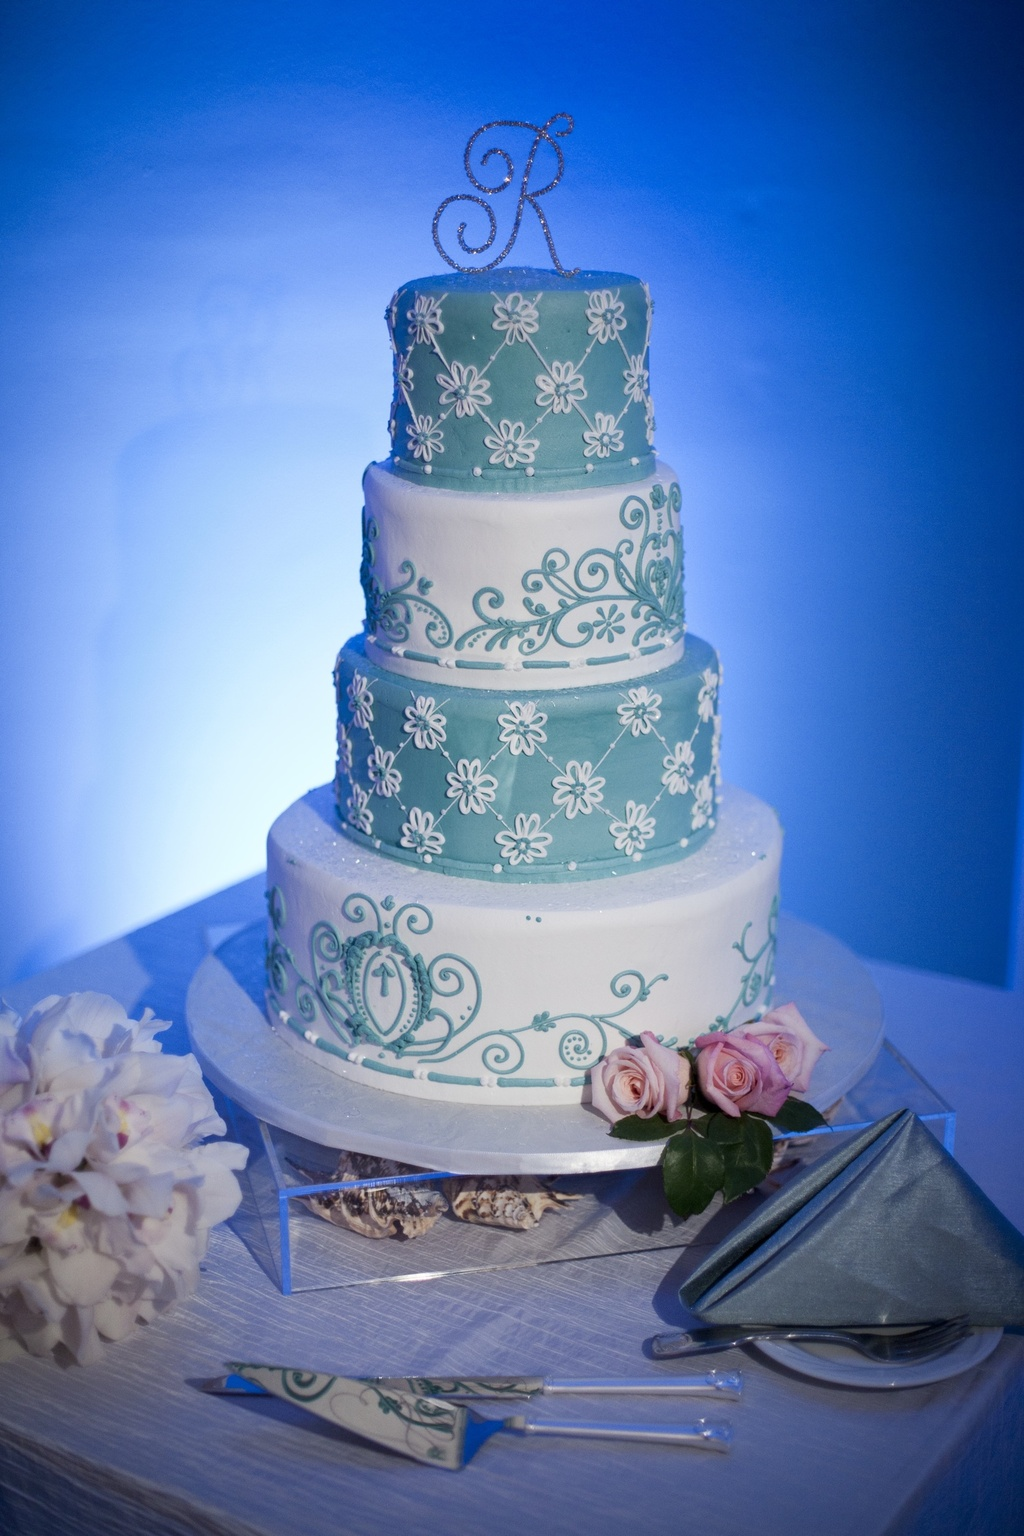 Opulent-wedding-cake-real-weddings-summer-themed.full